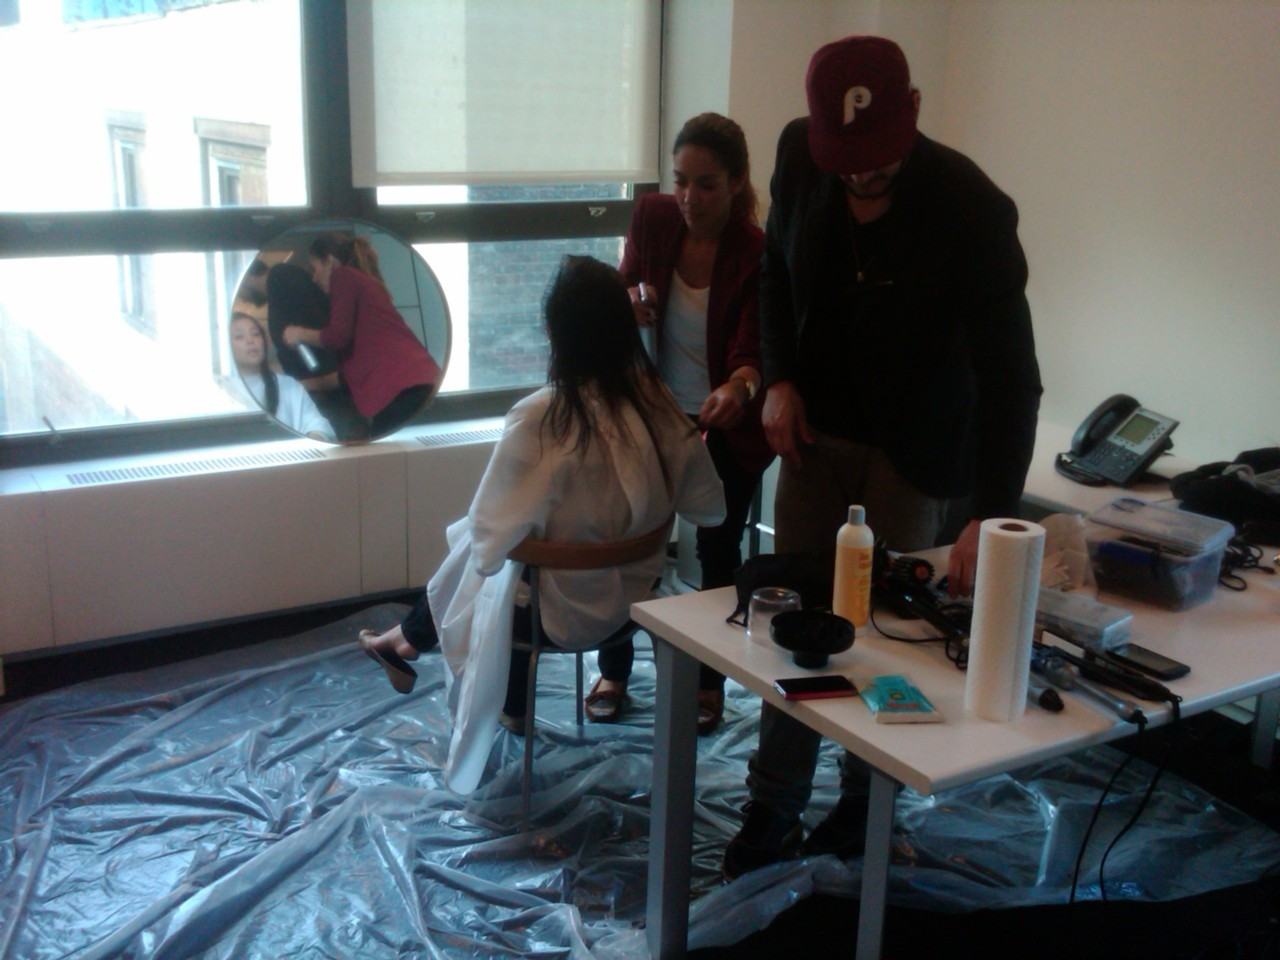 Director of content Mollie Chen getting her hair cut at BB HQ by stylist Mike Viggue and his assistant stylist, Amanda Pabon.  Birchbox is officially the best place ever to work. Not only do we get to try tons of fun beauty products and interact with incredibly smart and motivated people each day, but we even have renowned hair stylists come to the office to cut hair. It doesn't get better than this. —Meredith